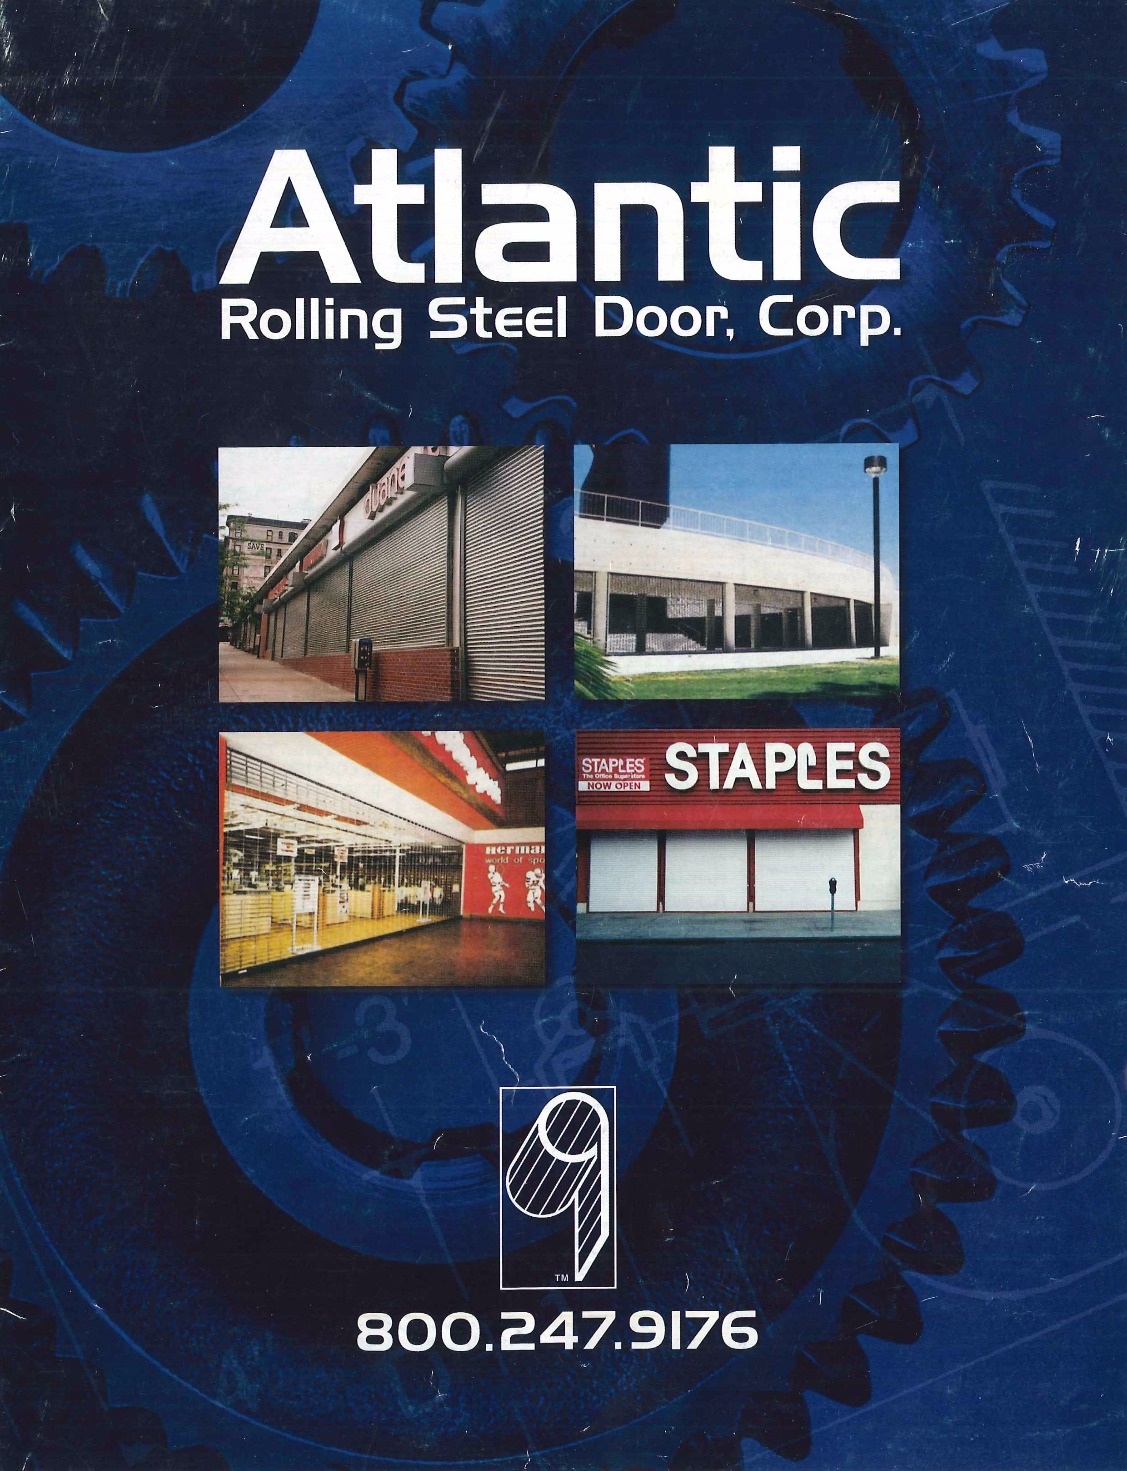 Charmant Only M/WBE Certified Rolling Steel Door Company In The New York Metropolitan  Area.